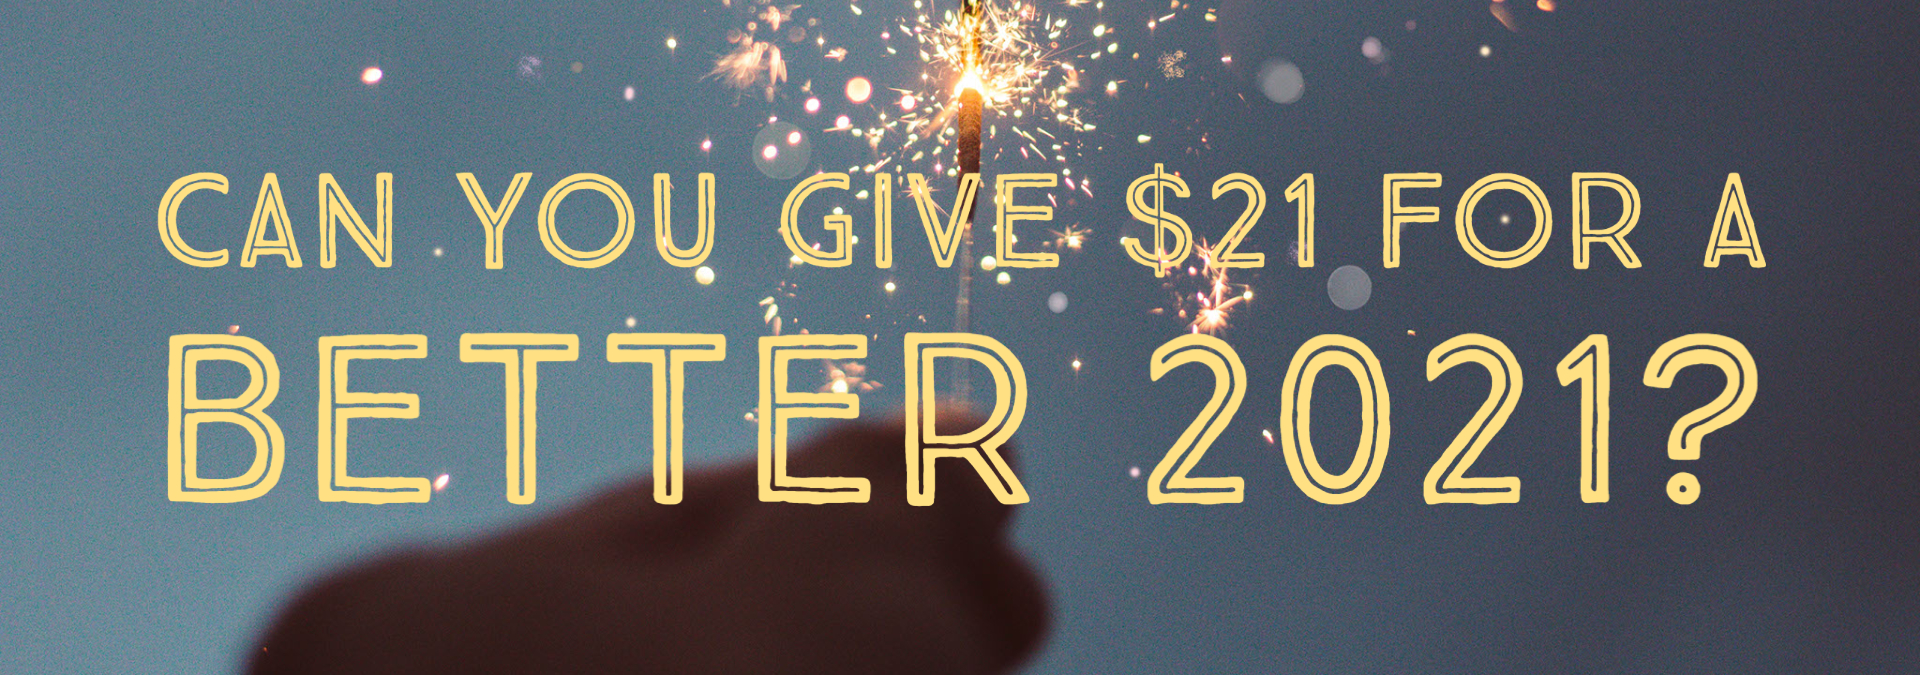 Can you give $21 for a better 2021?